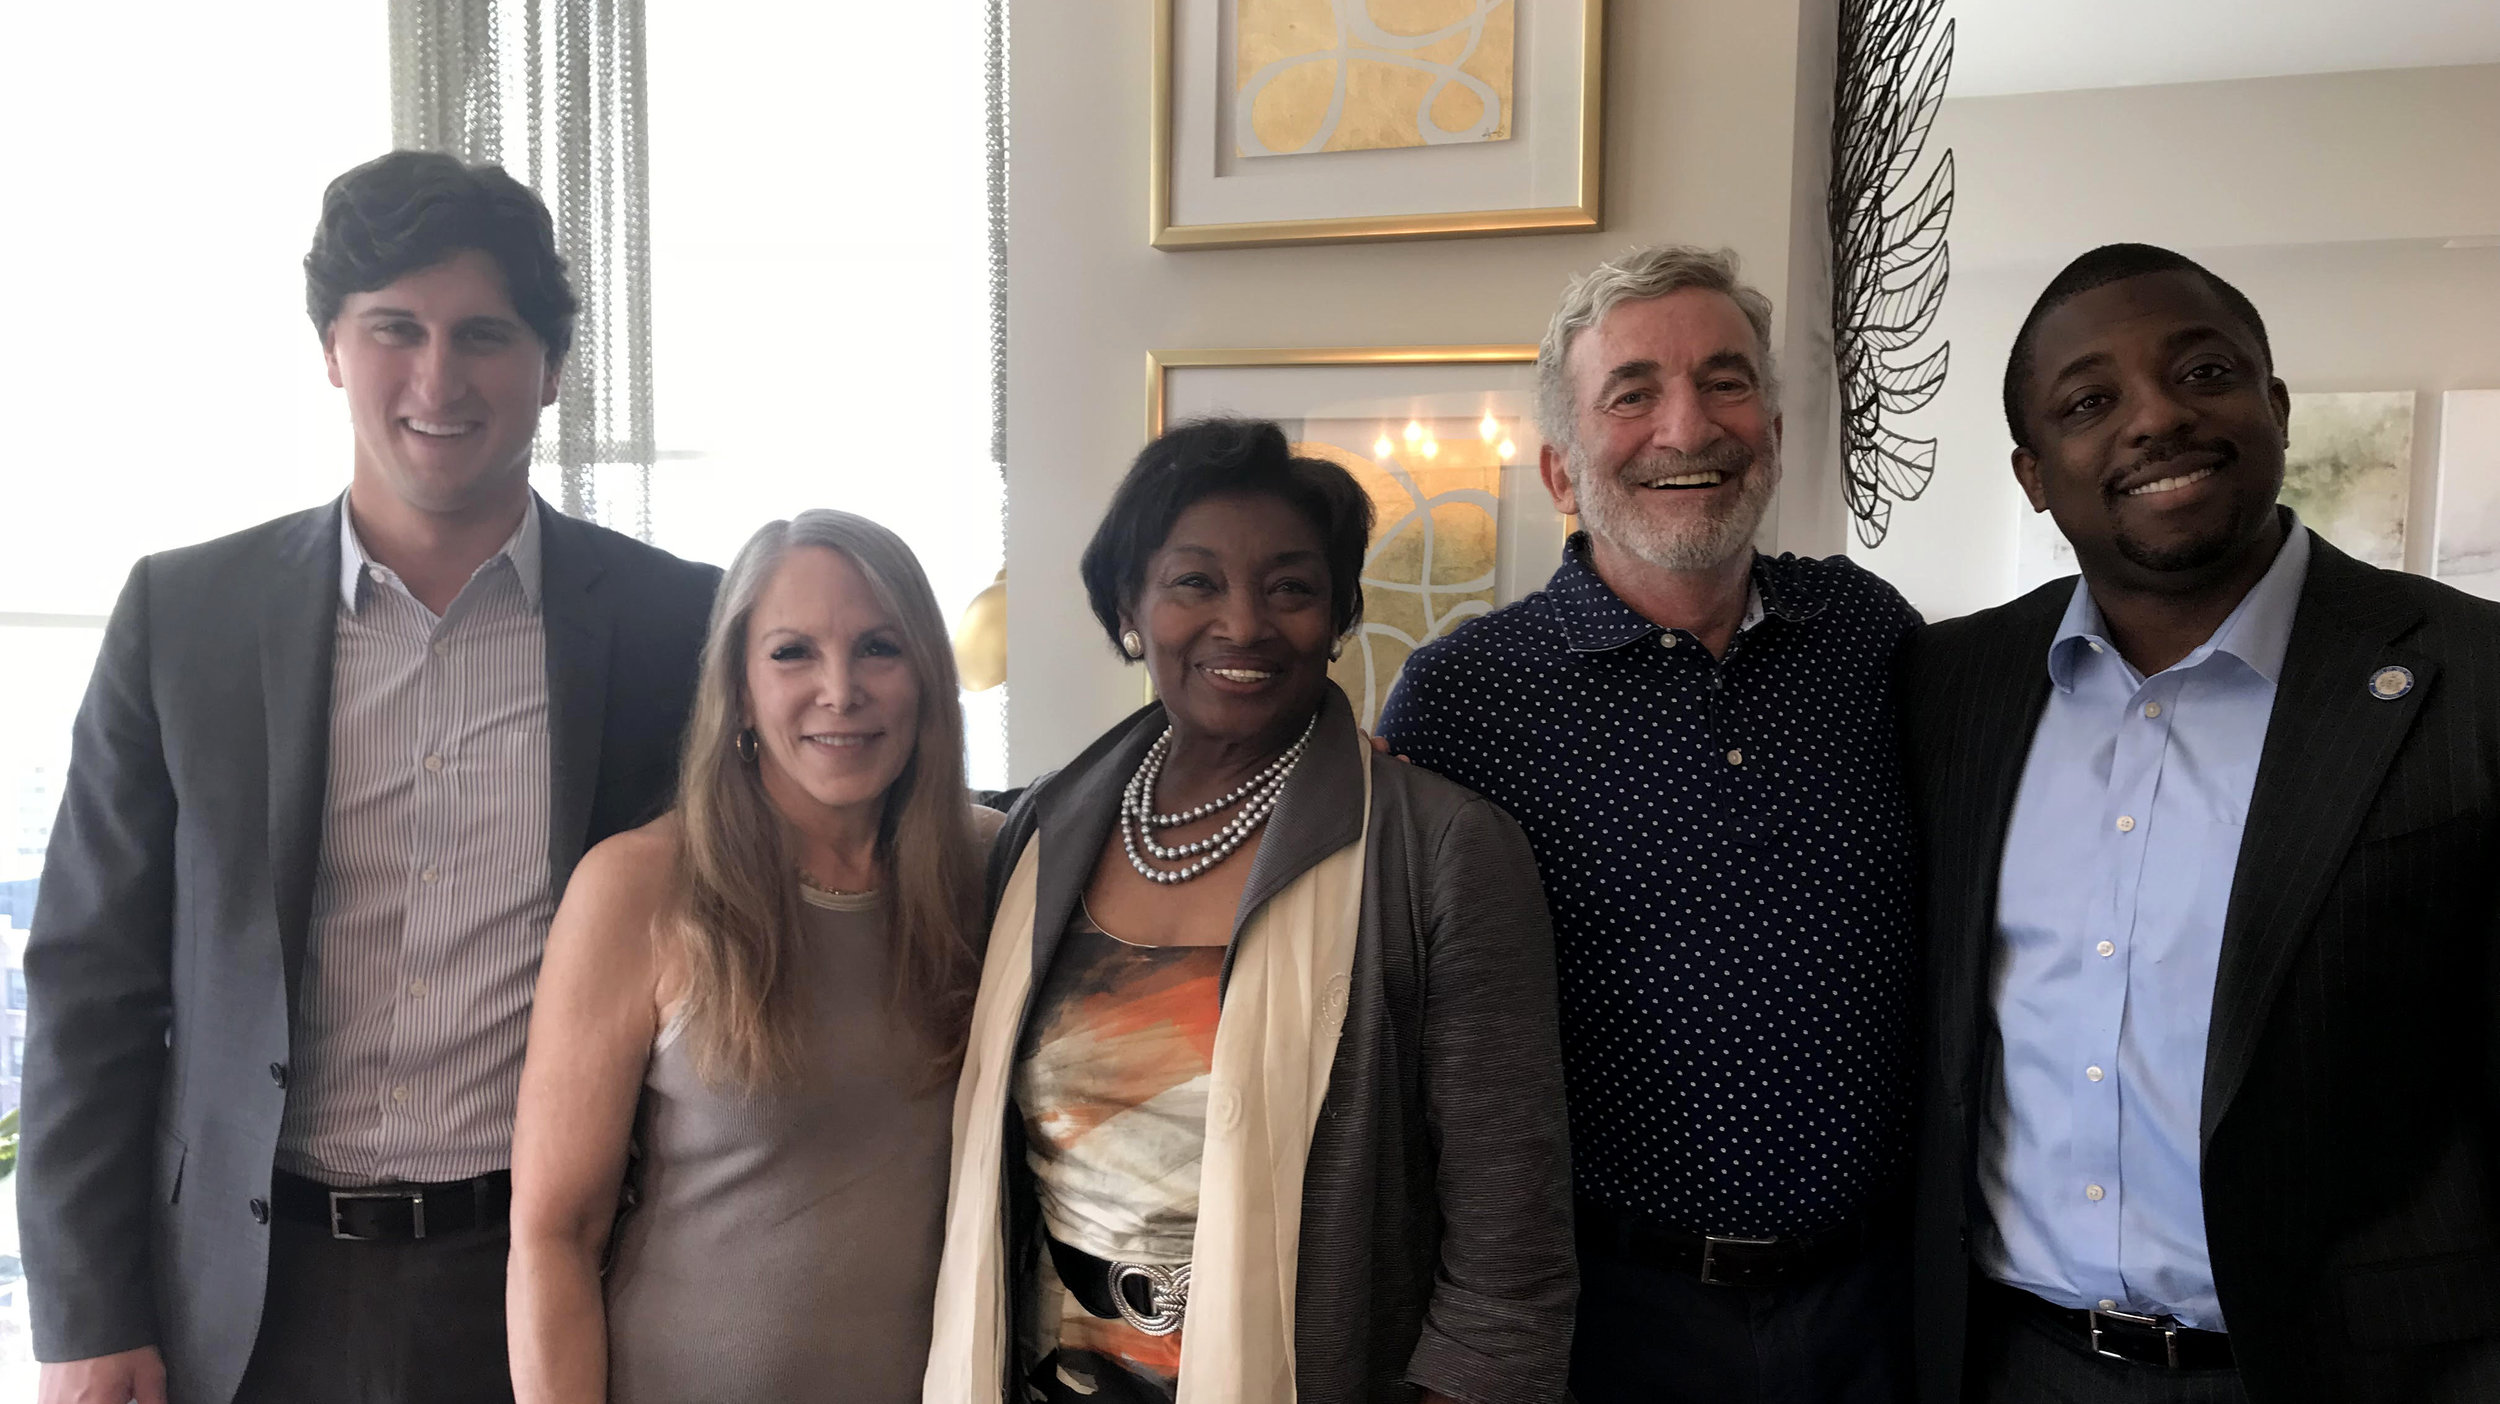 Aaron Migdol, Sheri Perl Migdol and Jerry Migdol are picture with New York State Senate leader Andrea Stewart Cousins and State Senator Brian Benjamin.